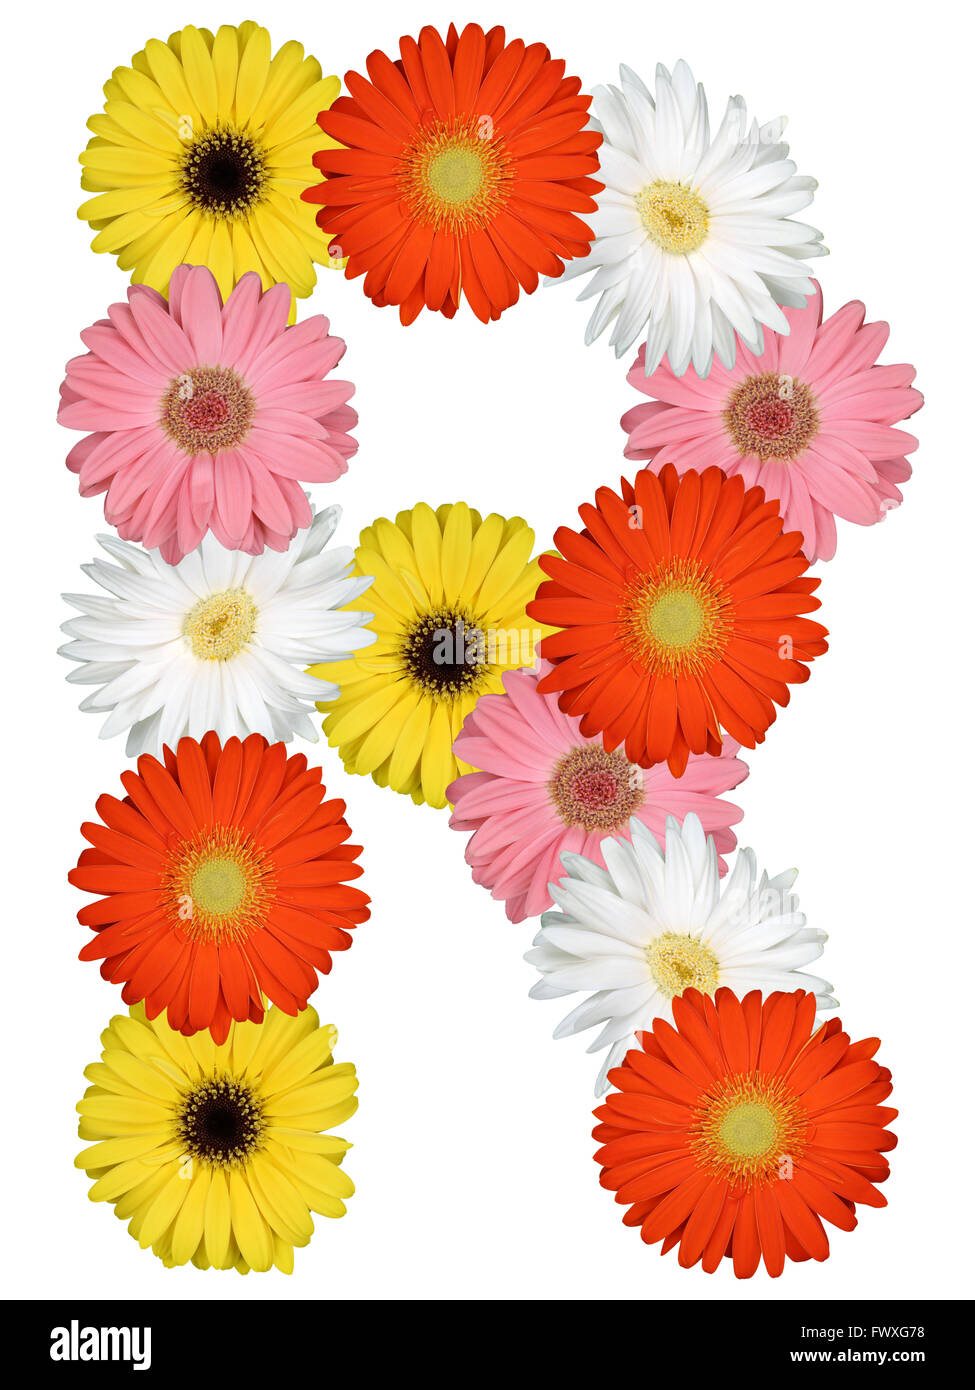 Letter r flowers stock photos letter r flowers stock images alamy letter r alphabet from flowers isolated on a white background stock image altavistaventures Choice Image